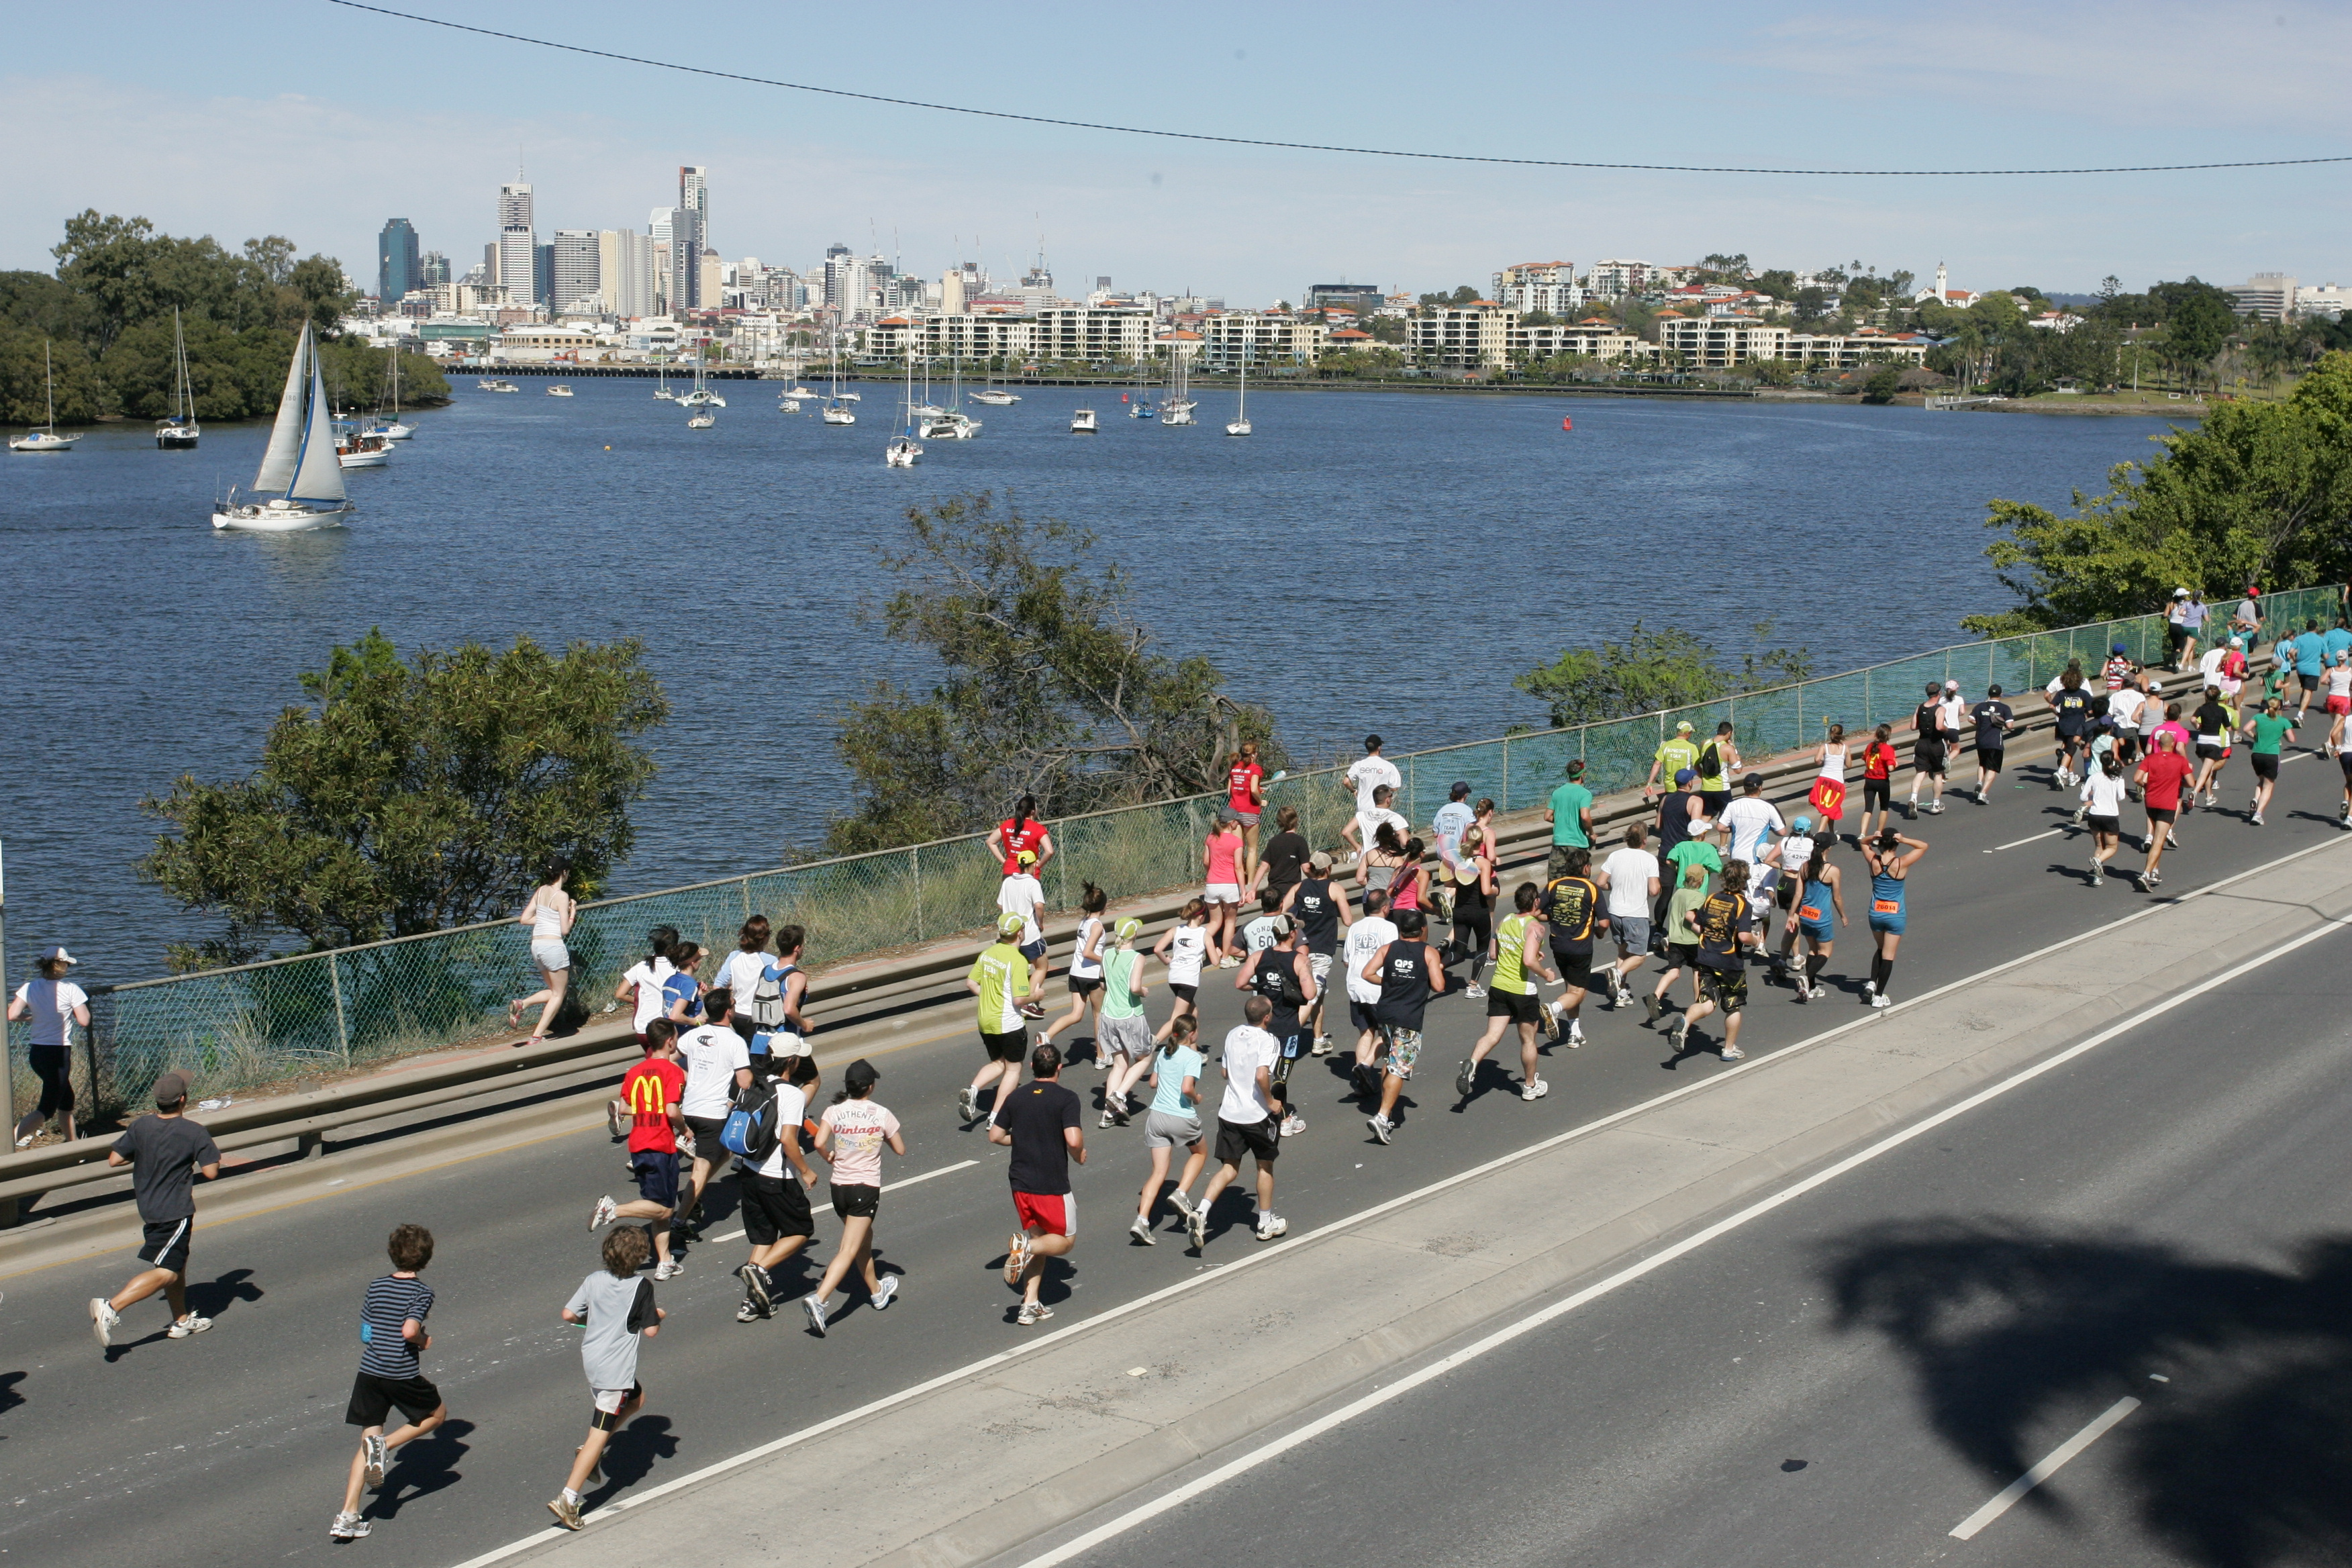 Running Back in Time: The Sunday Mail Bridge to Brisbane's 22-Year History